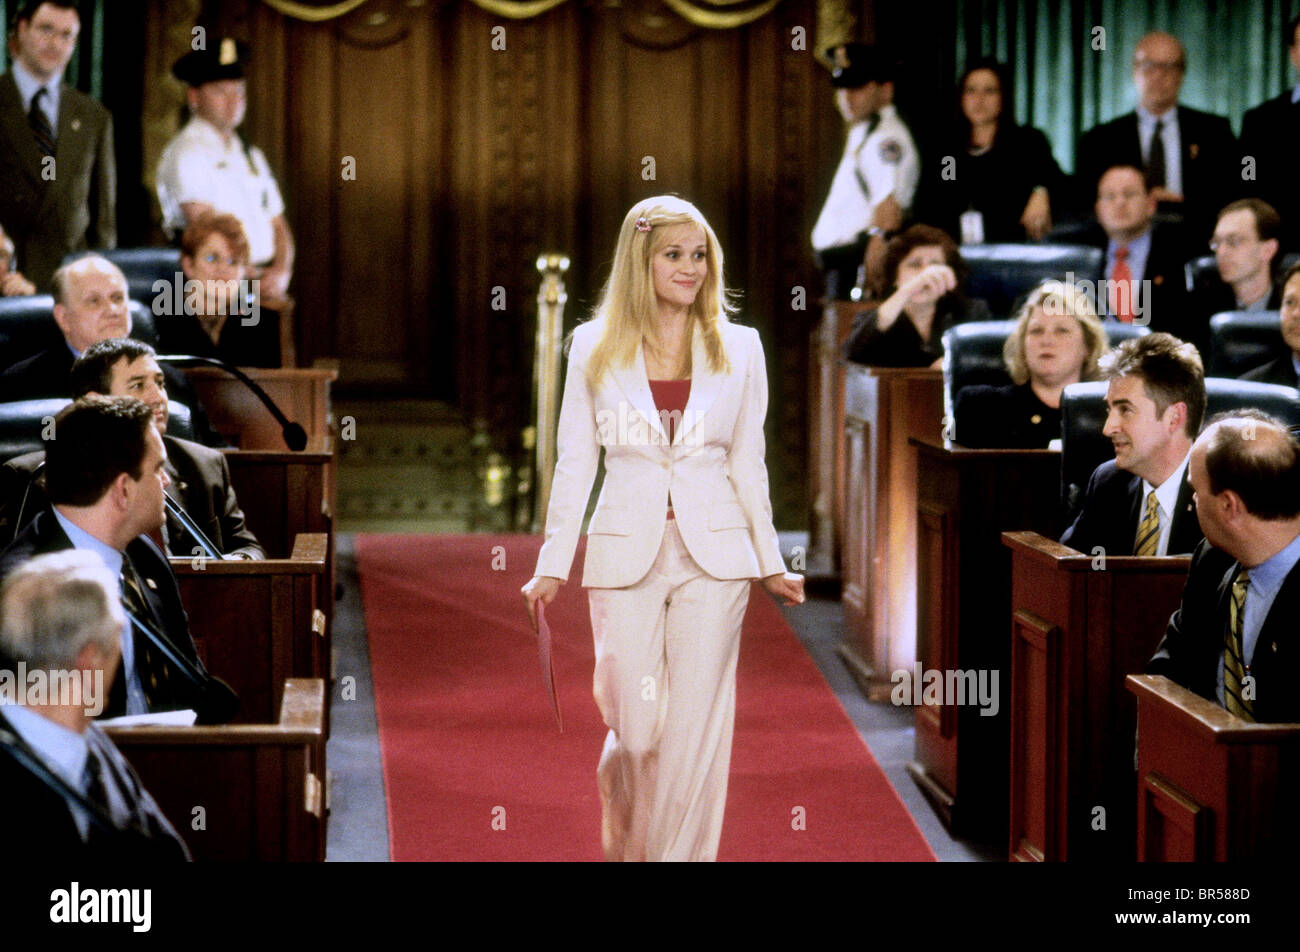 REESE WITHERSPOON LEGALLY BLONDE 2: RED WHITE & BLONDE (2003) - Stock Image